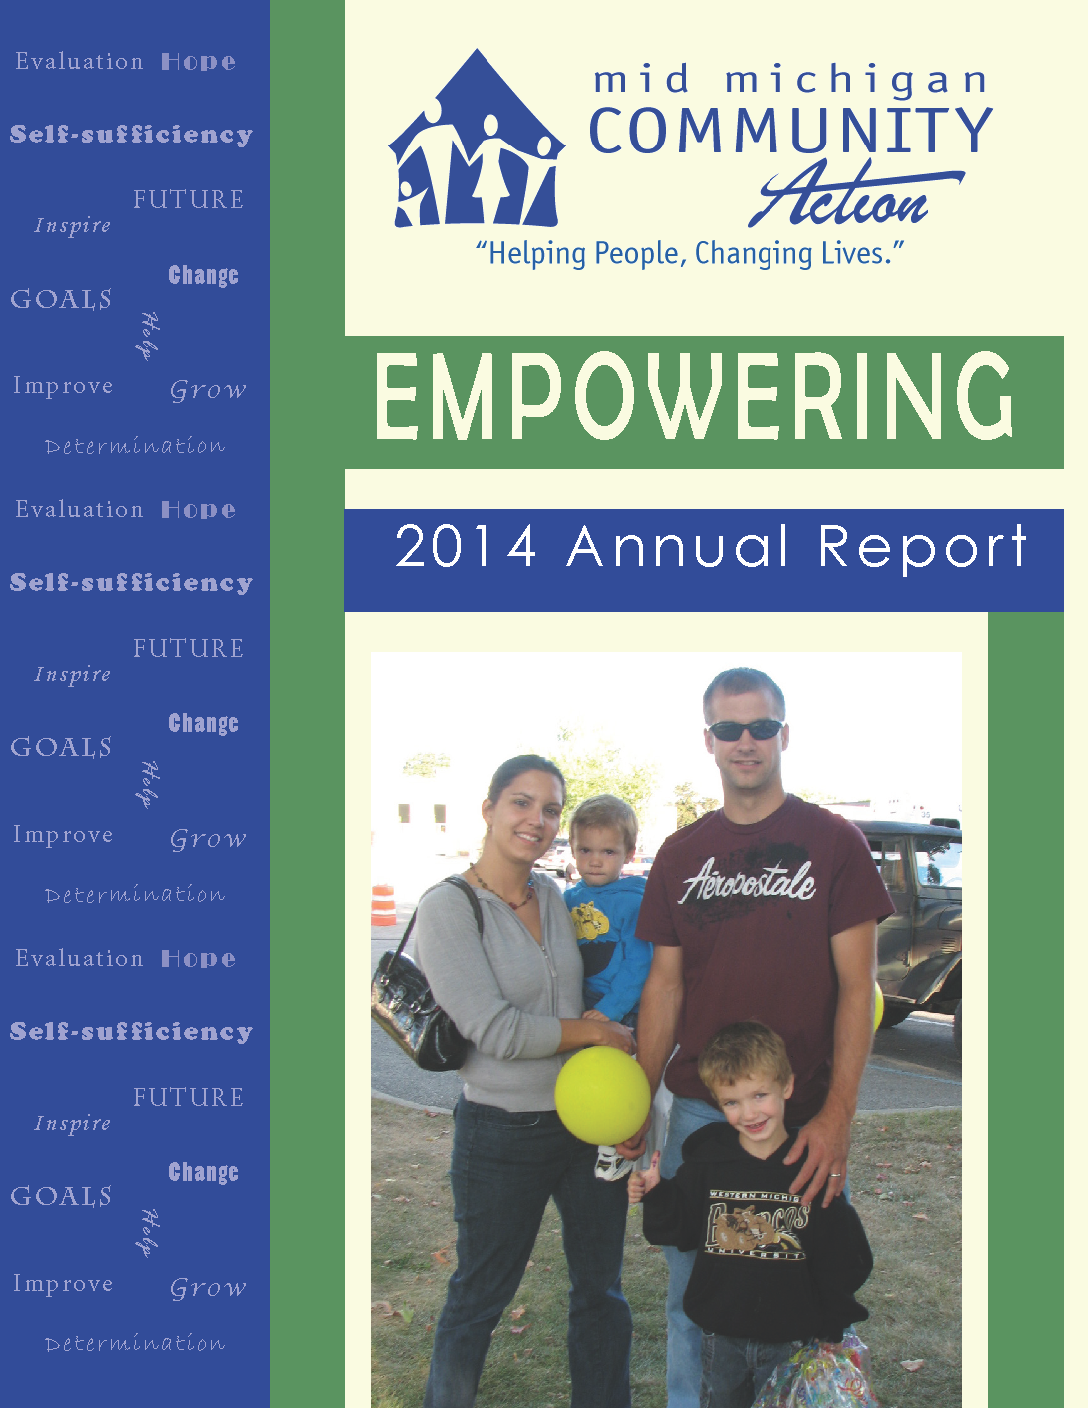 Annual Report 2014 Empowering